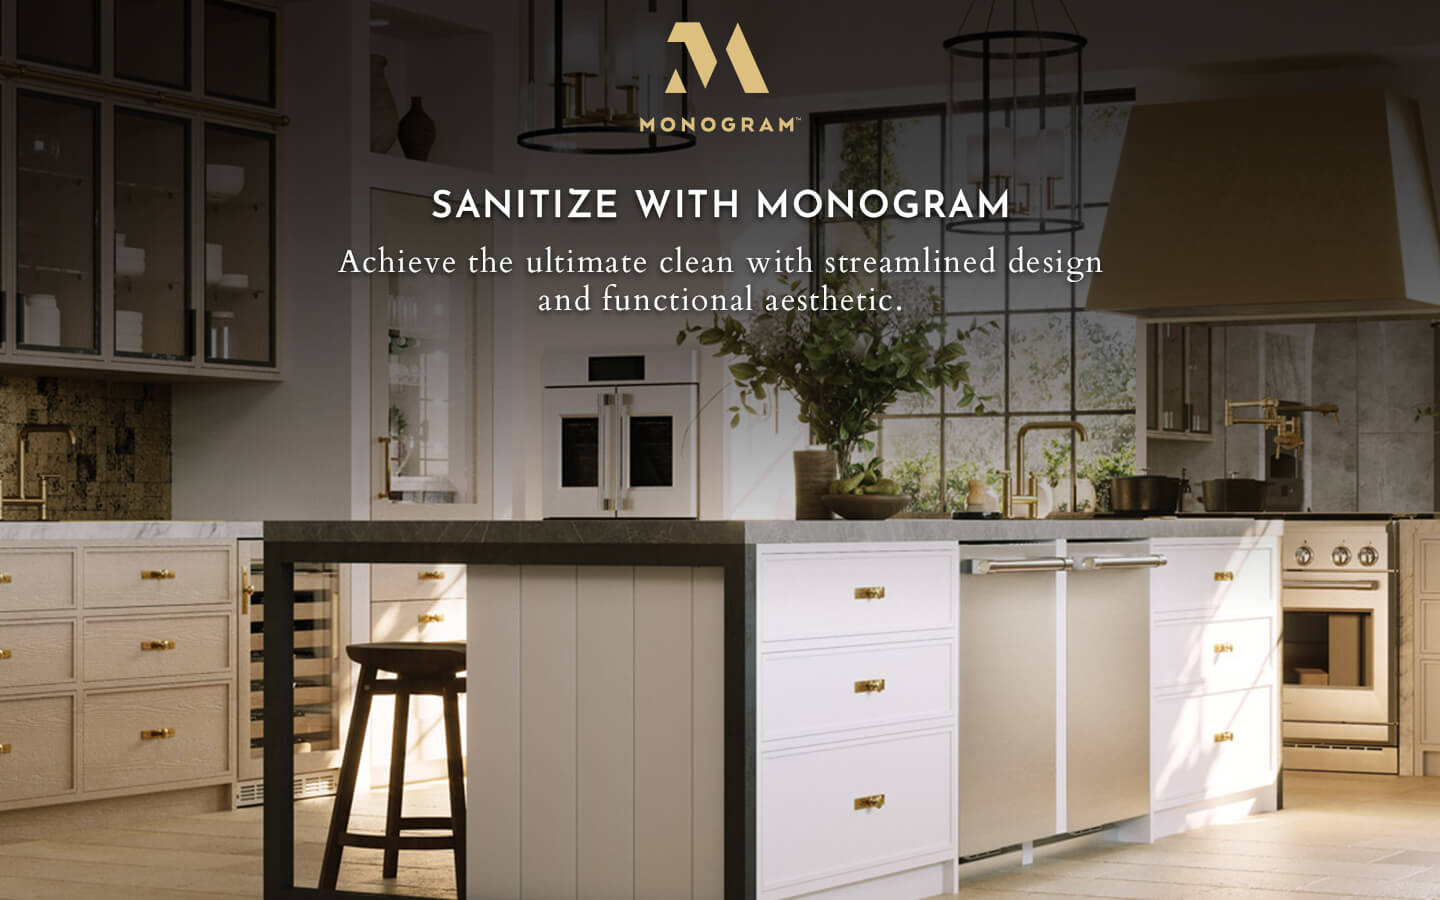 Sanitize with Monogram Appliances